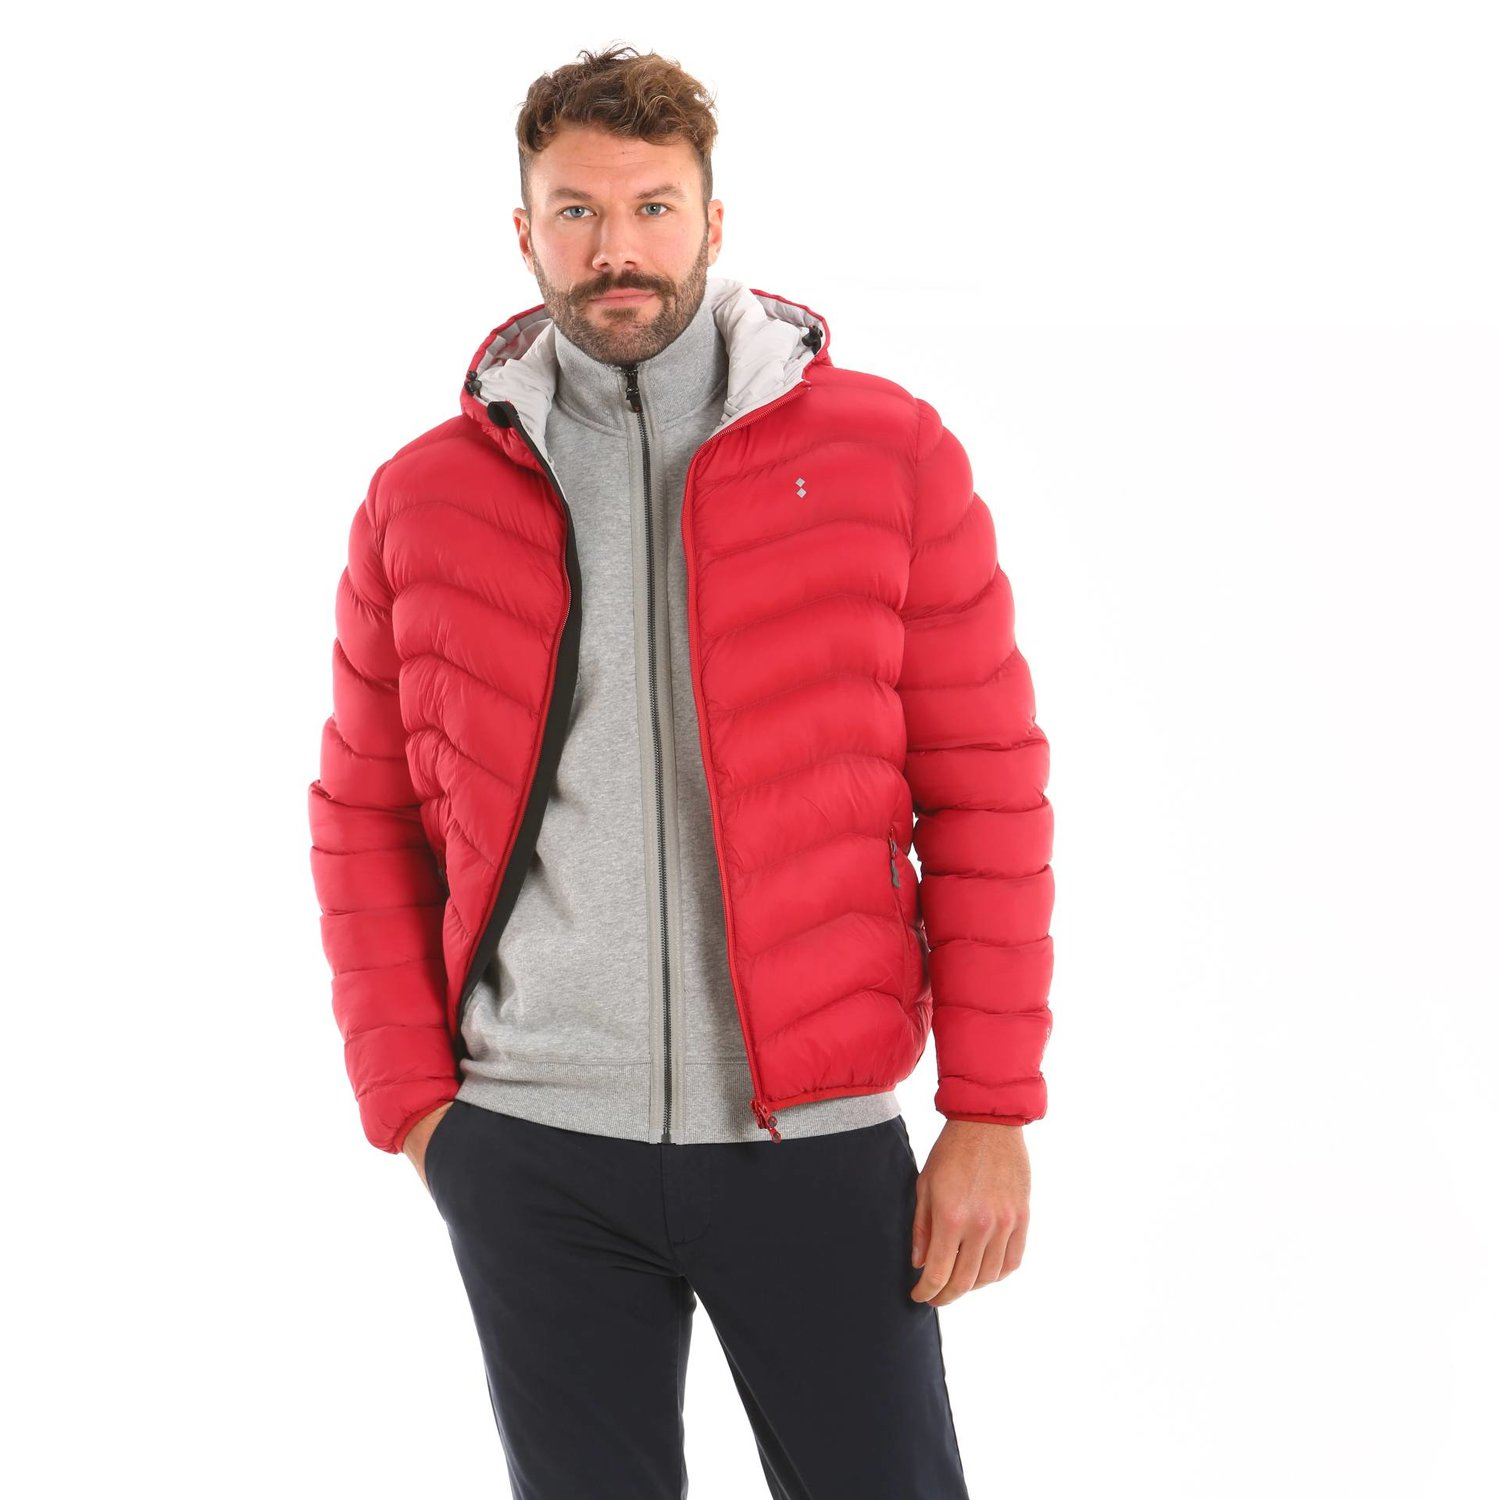 B100 jacket - Chili Red